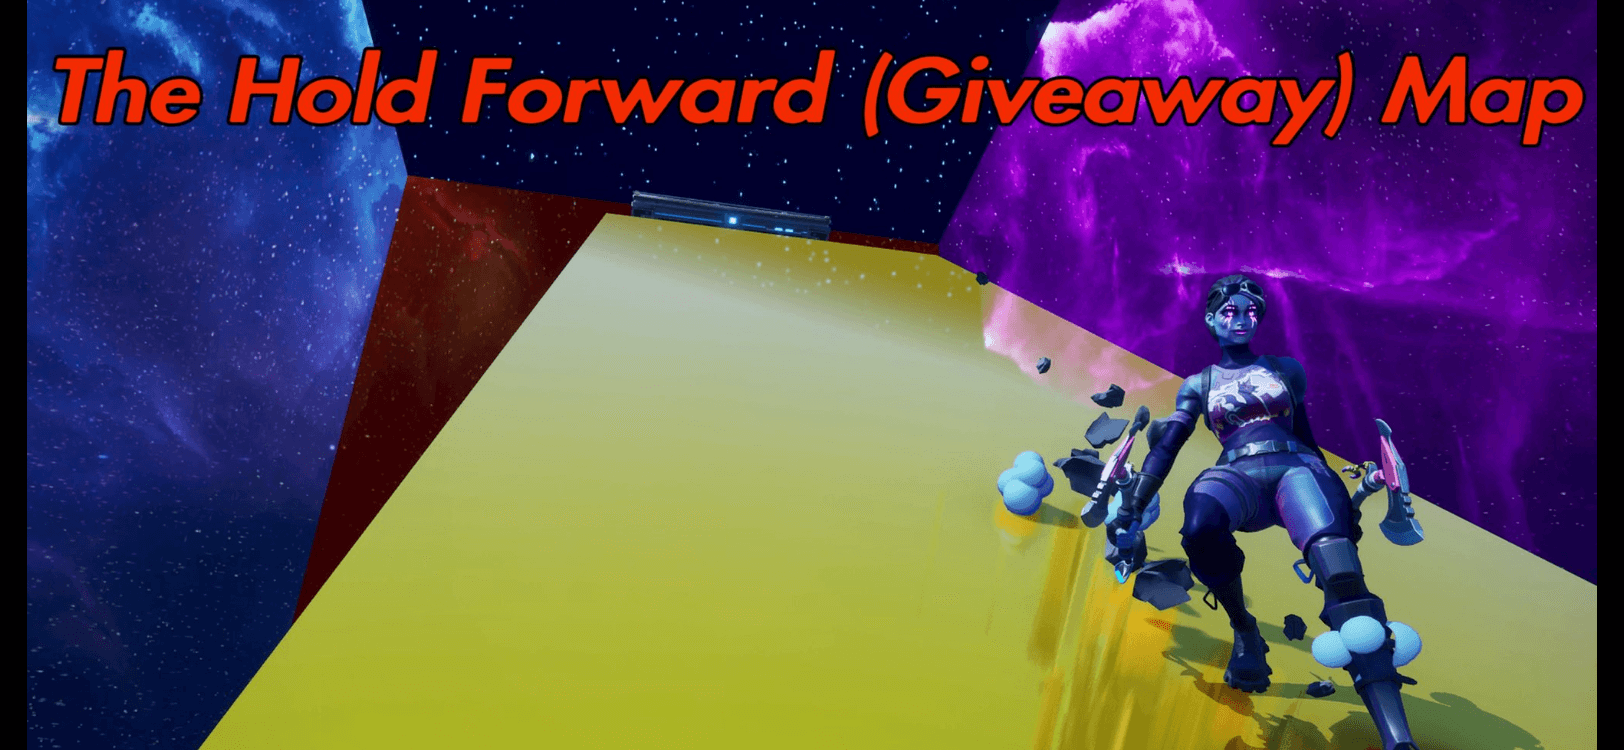 THE HOLD FORWARD (GIVEAWAY) MAP